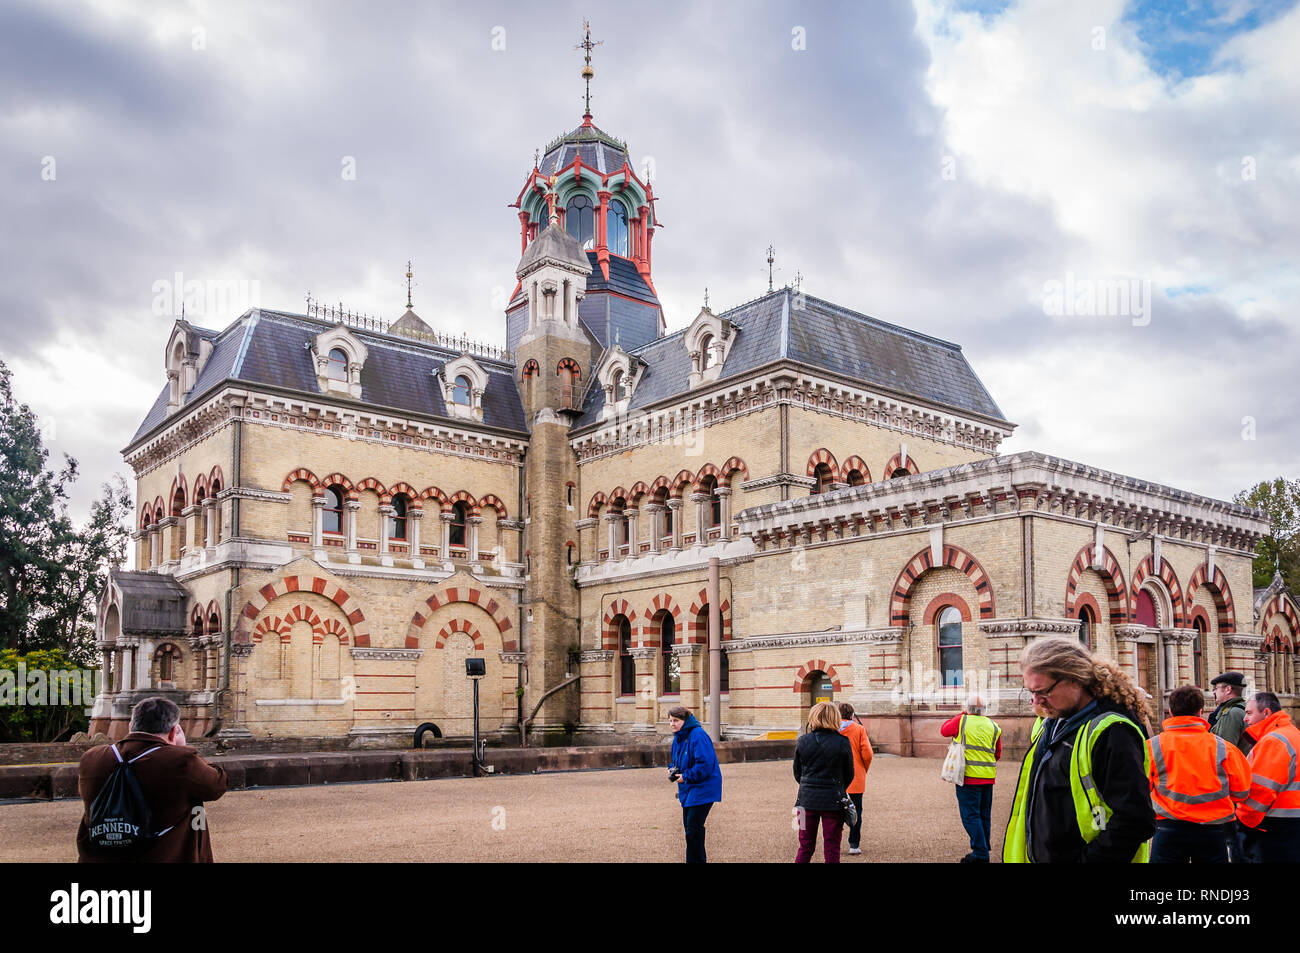 Abbey Mills Pumping Station, Abbey Lane Nicknamed the 'Cathedral of sewage' - Stock Image